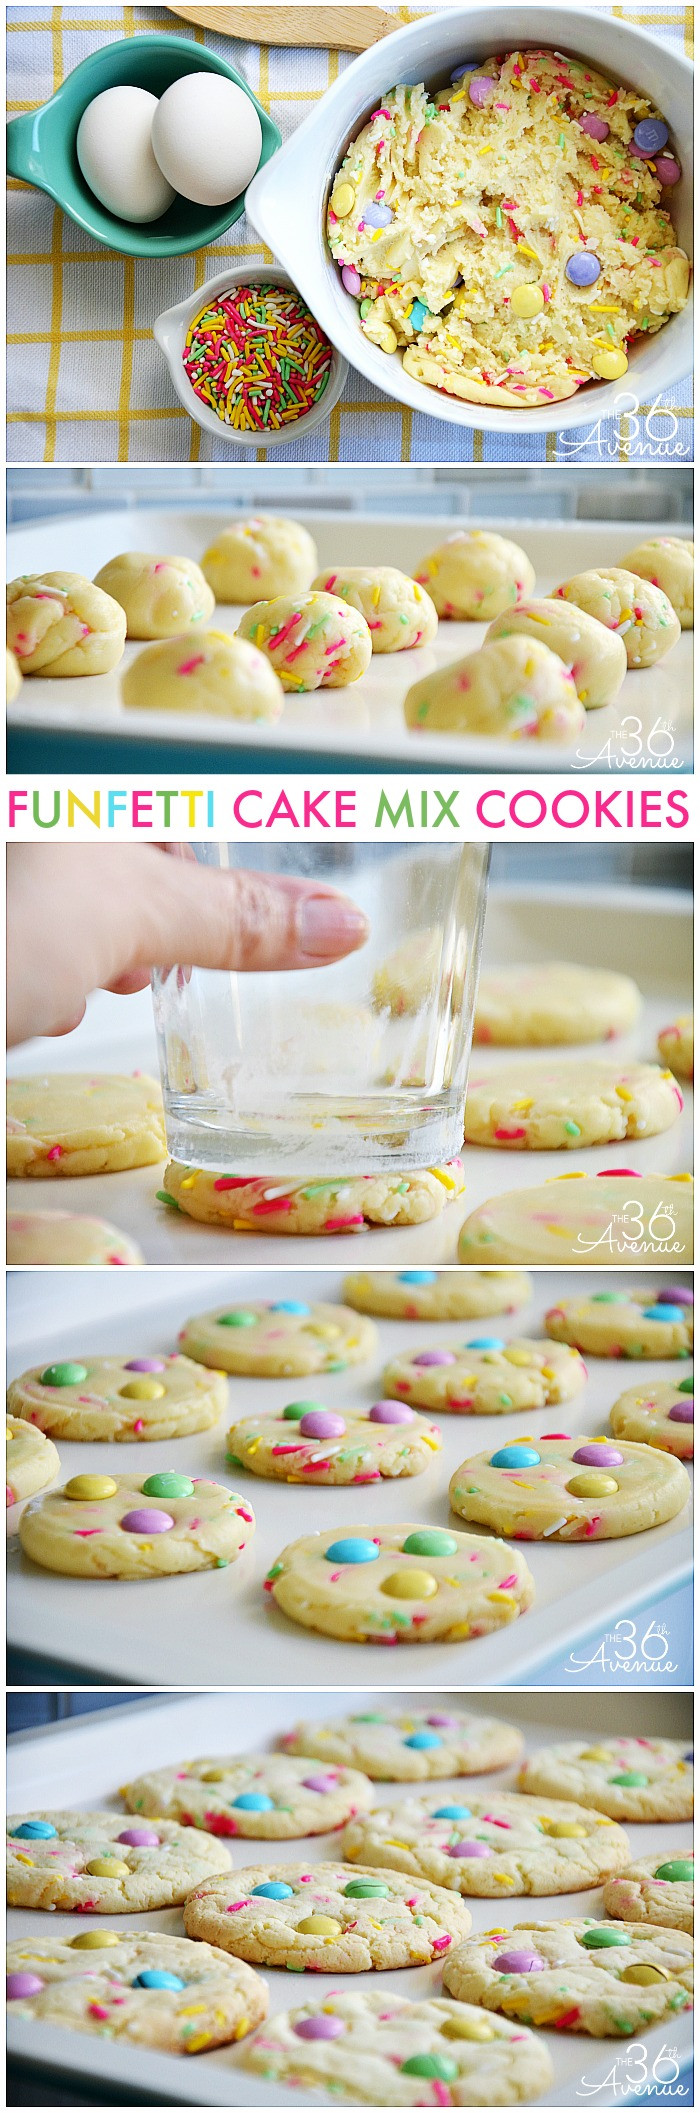 Cake Mix Cookie Recipes  10 Minute Doughnut Recipe The 36th AVENUE